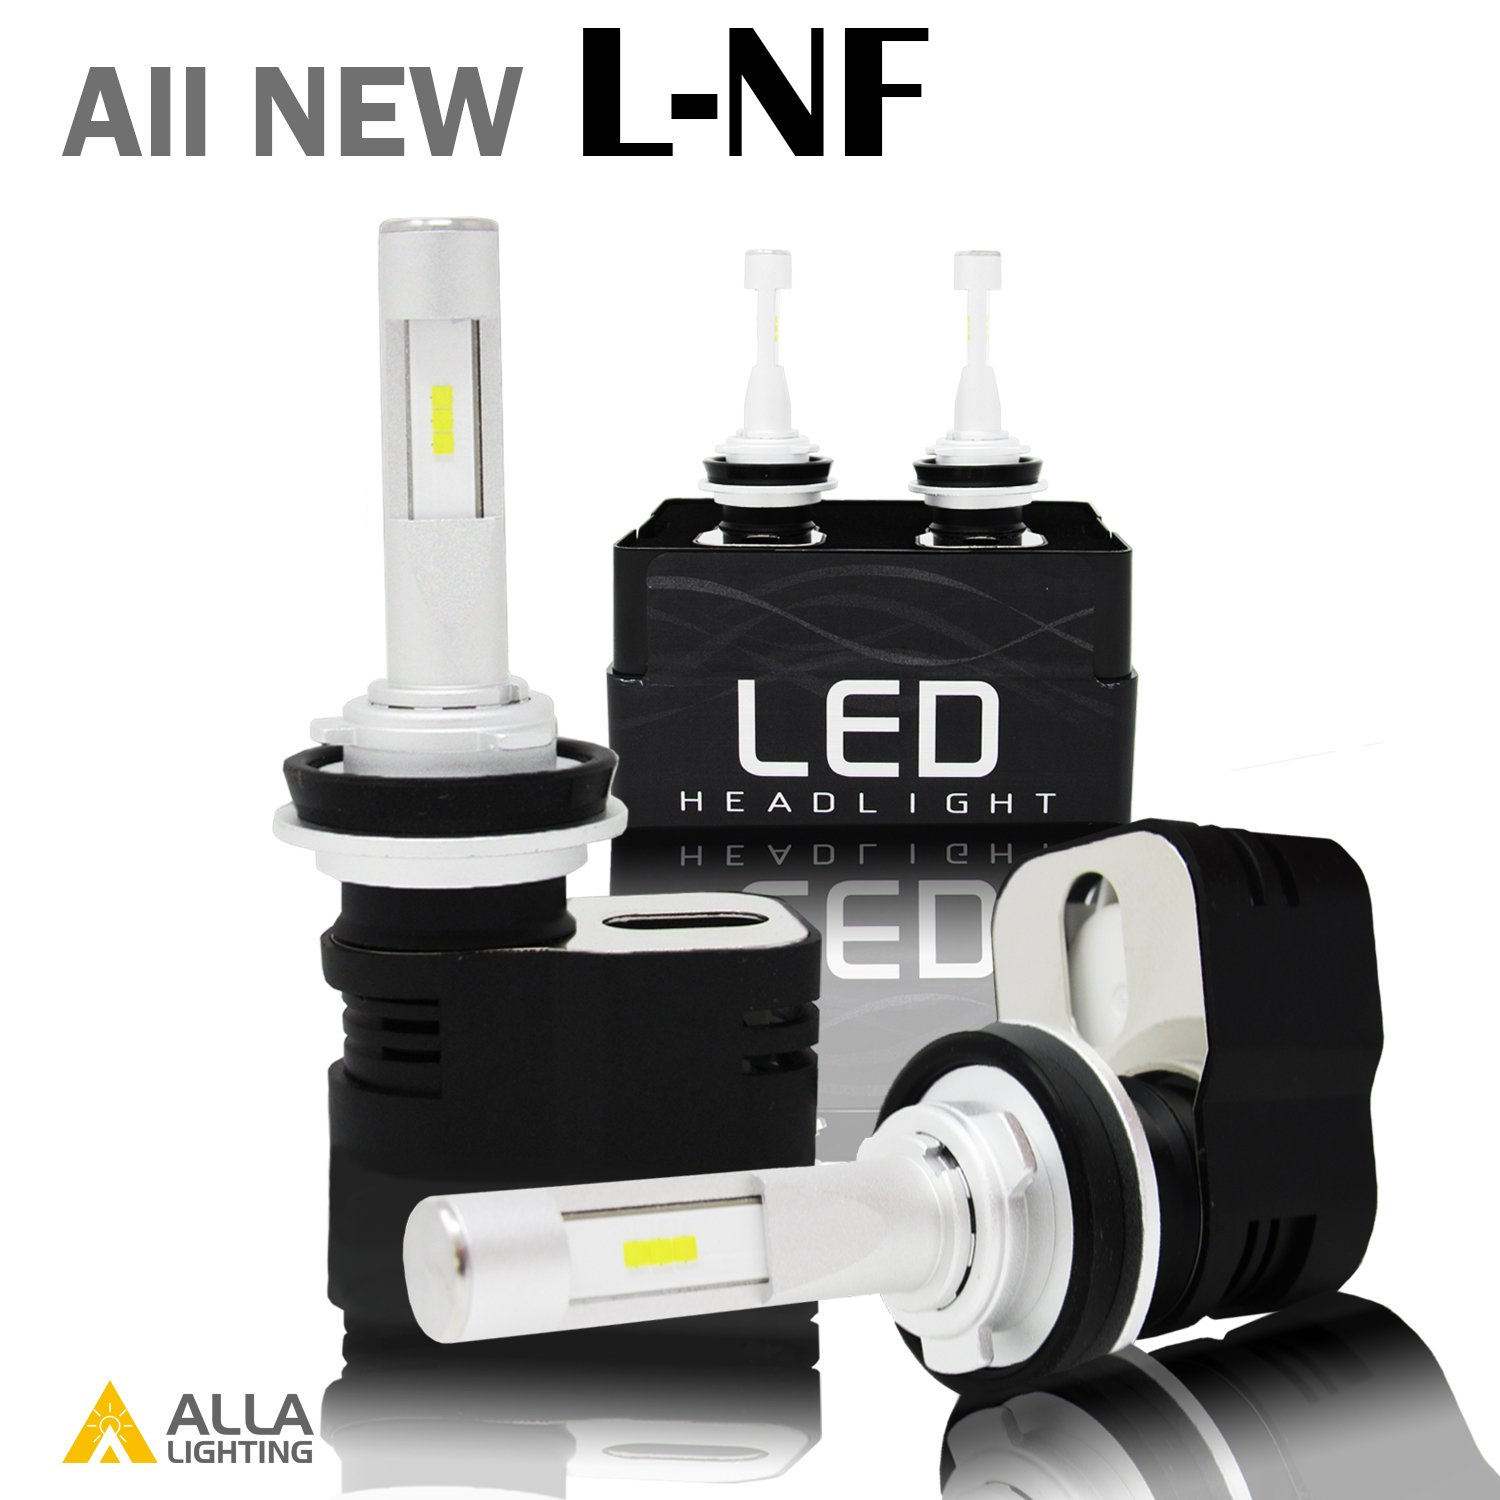 Alla Lighting Led H11 Headlight Bulb L Nf Vision 8400lm Load Resistor Wiring Harness Xtreme Bright H8 H9 Xenon 6000k6500k White All In One